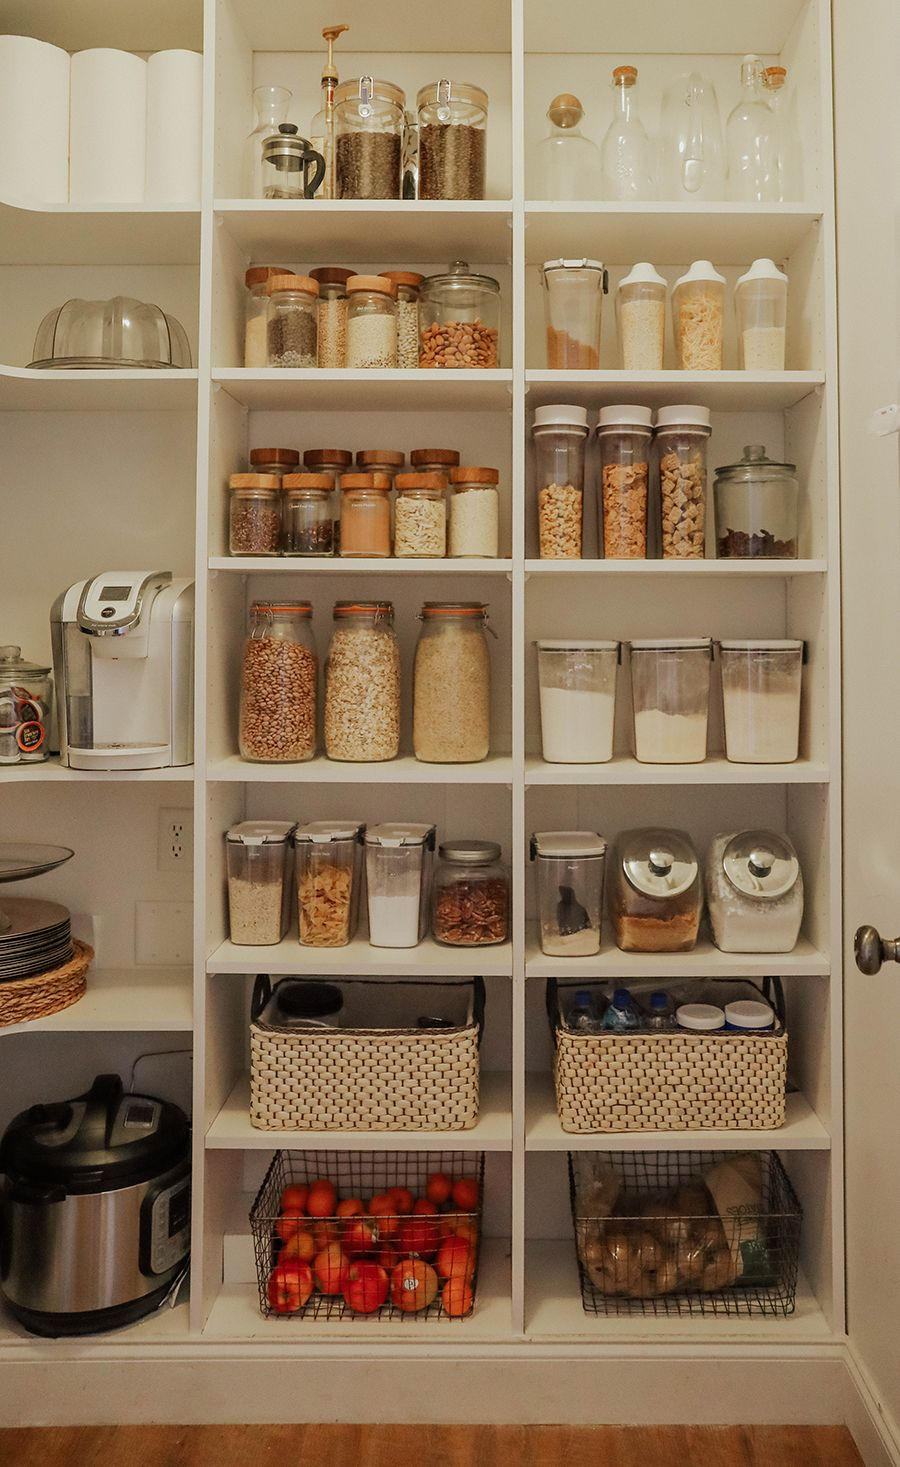 Pantry Organization Grocery Planning In Honor Of Design